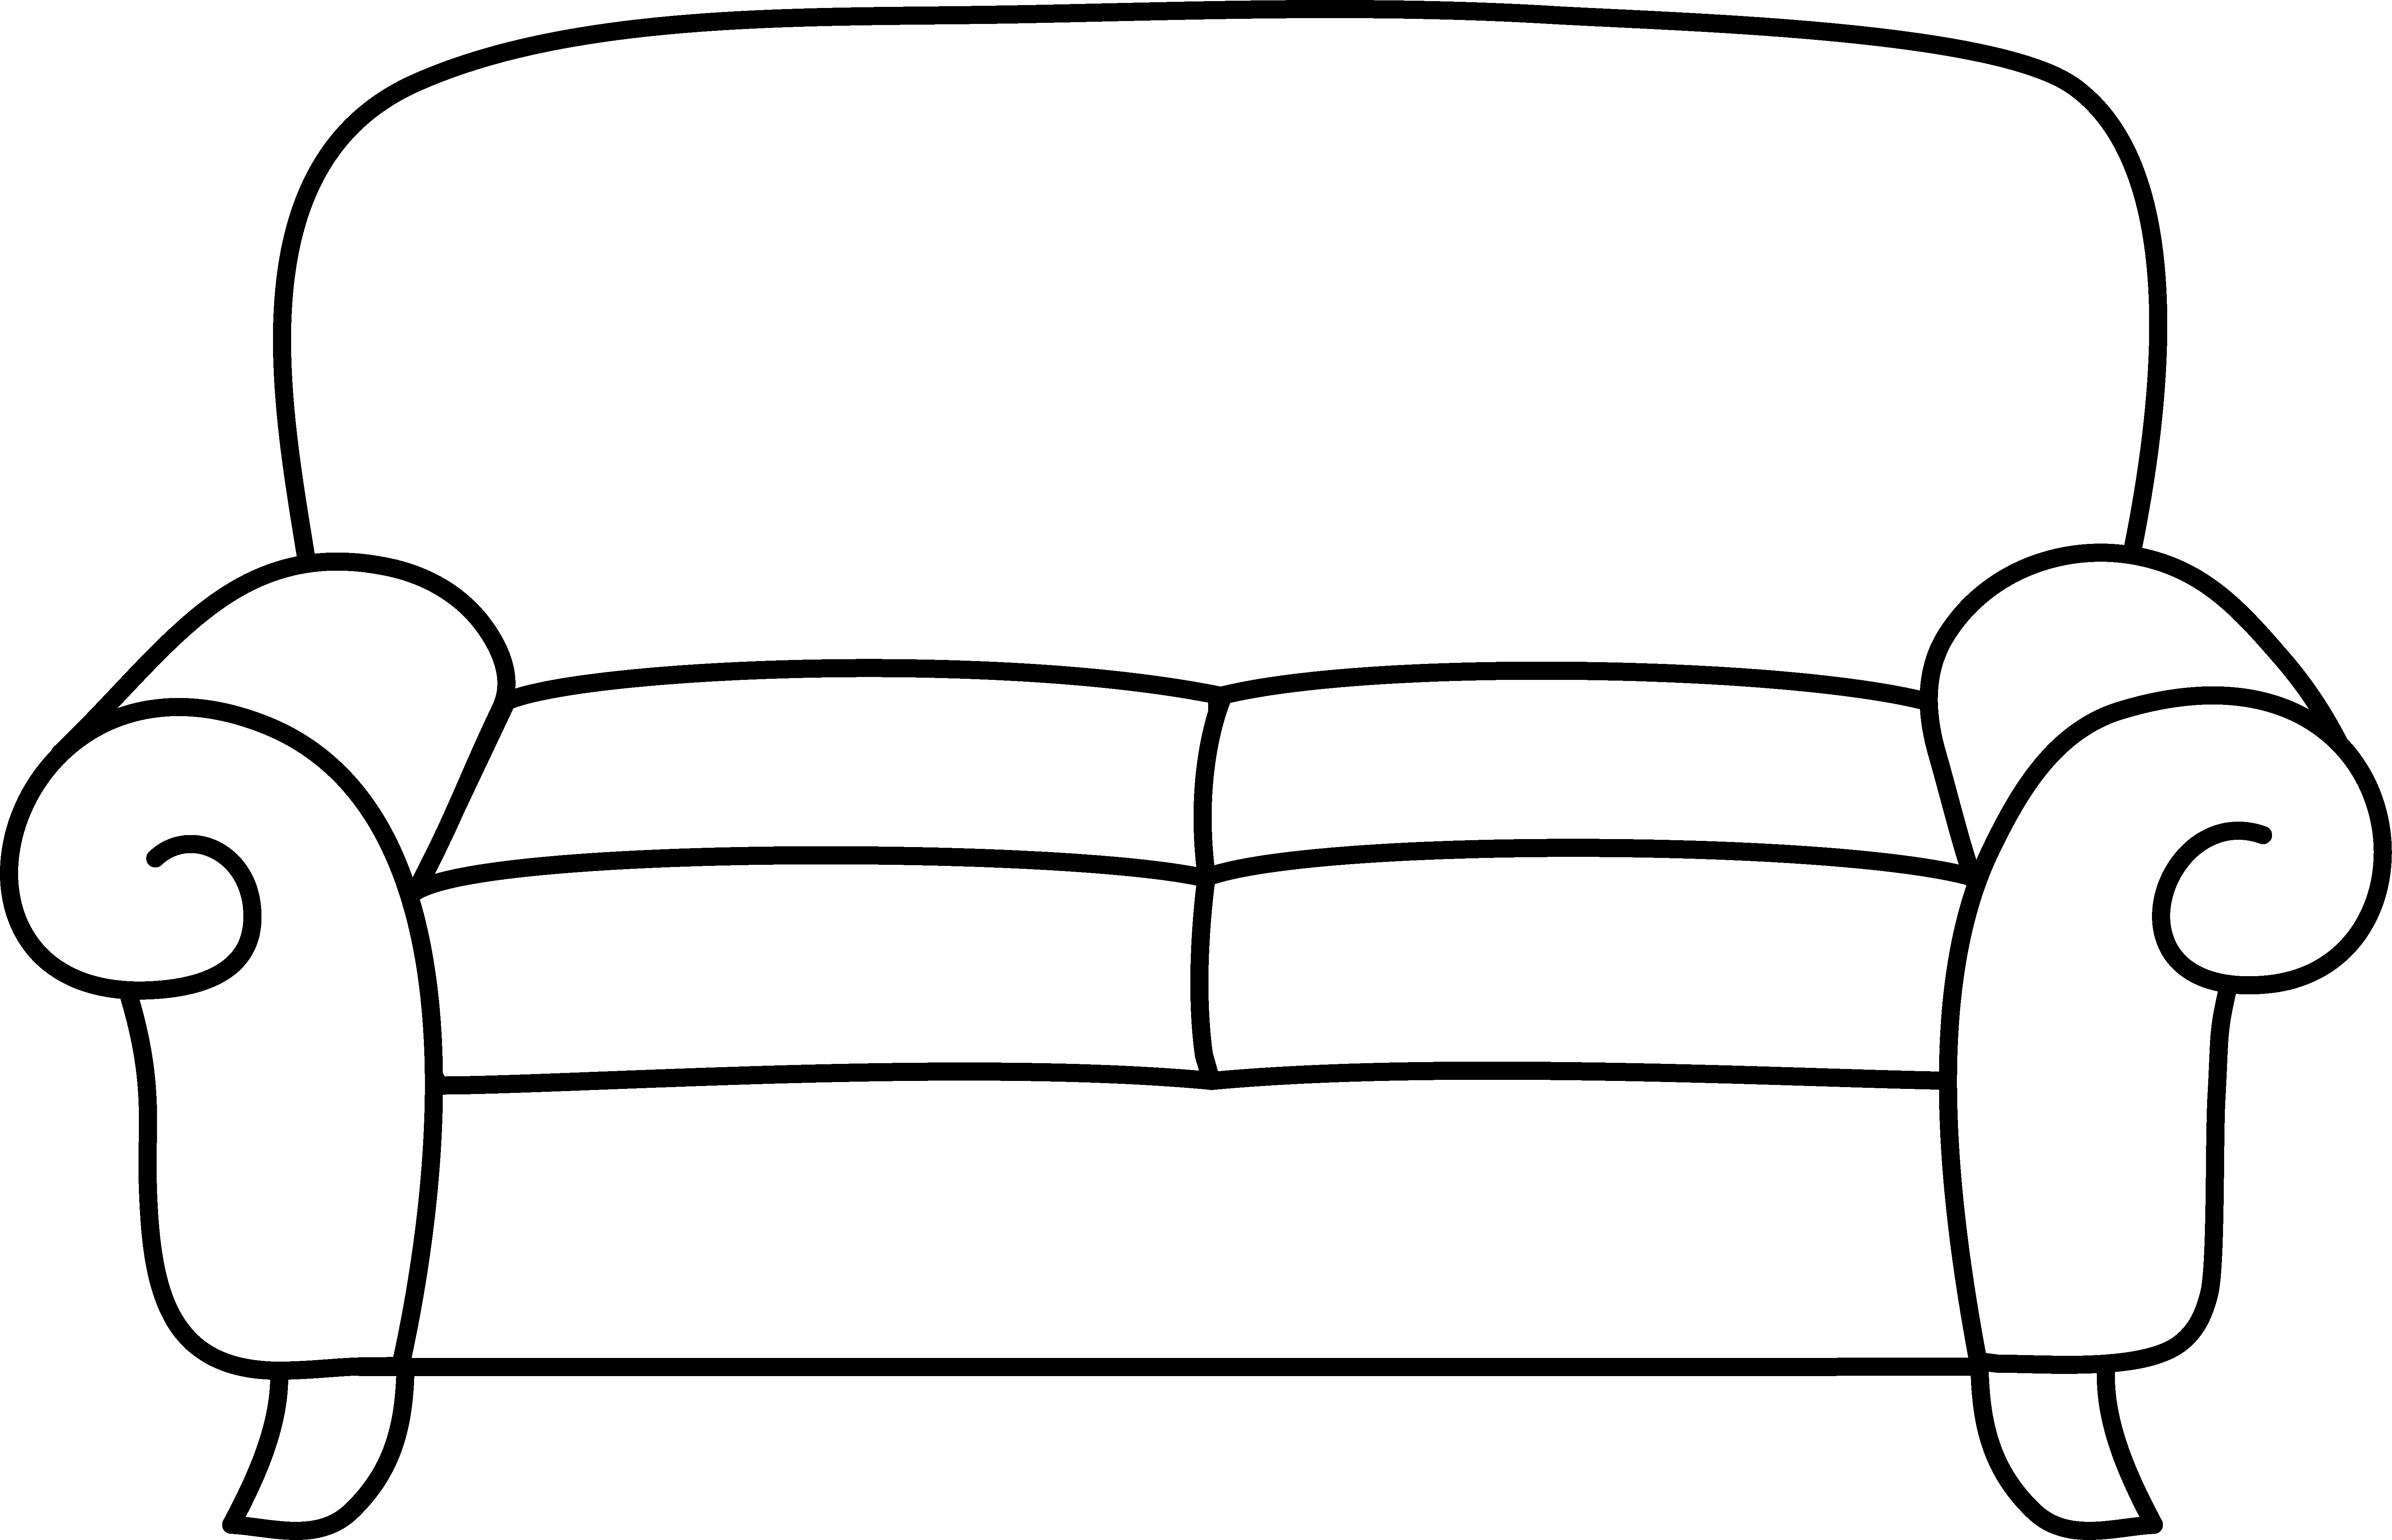 Couch clipart black and white 5 » Clipart Station.